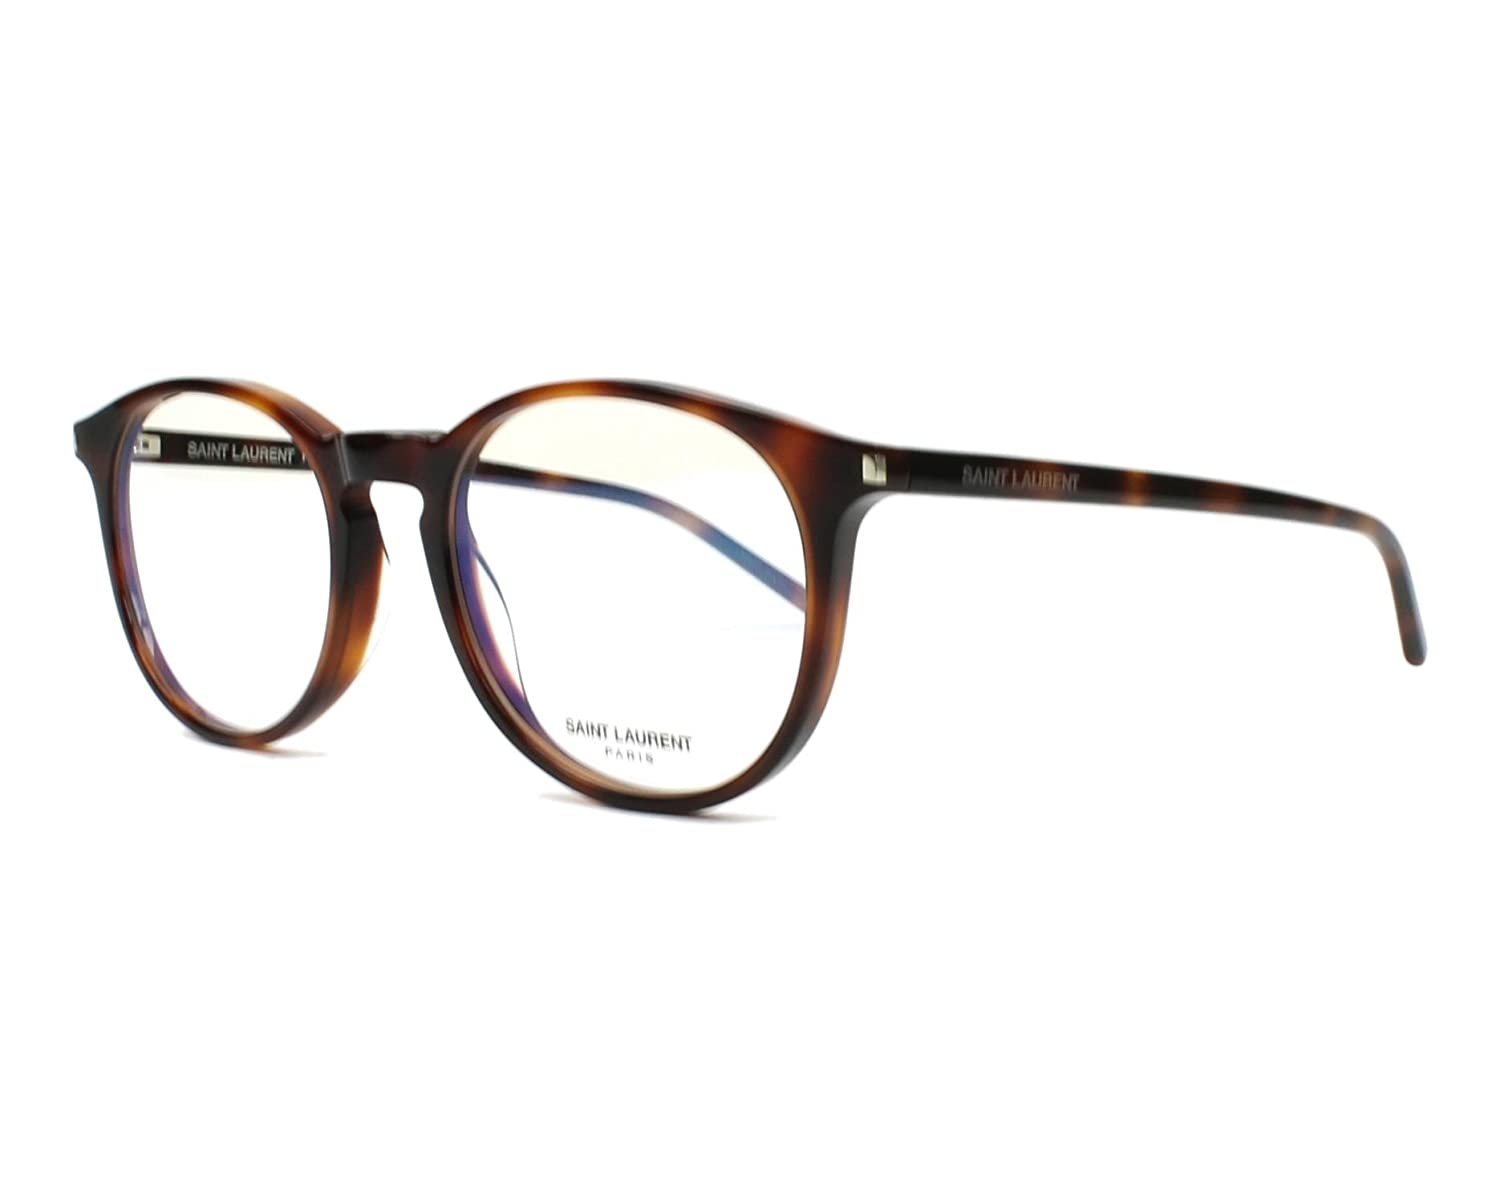 3fc4221a8d SAINT LAURENT SL 106 002 OCCHIALE DA VISTA HAVANA EYEGLASSES SEHBRILLE  UNISEX at Amazon Men s Clothing store